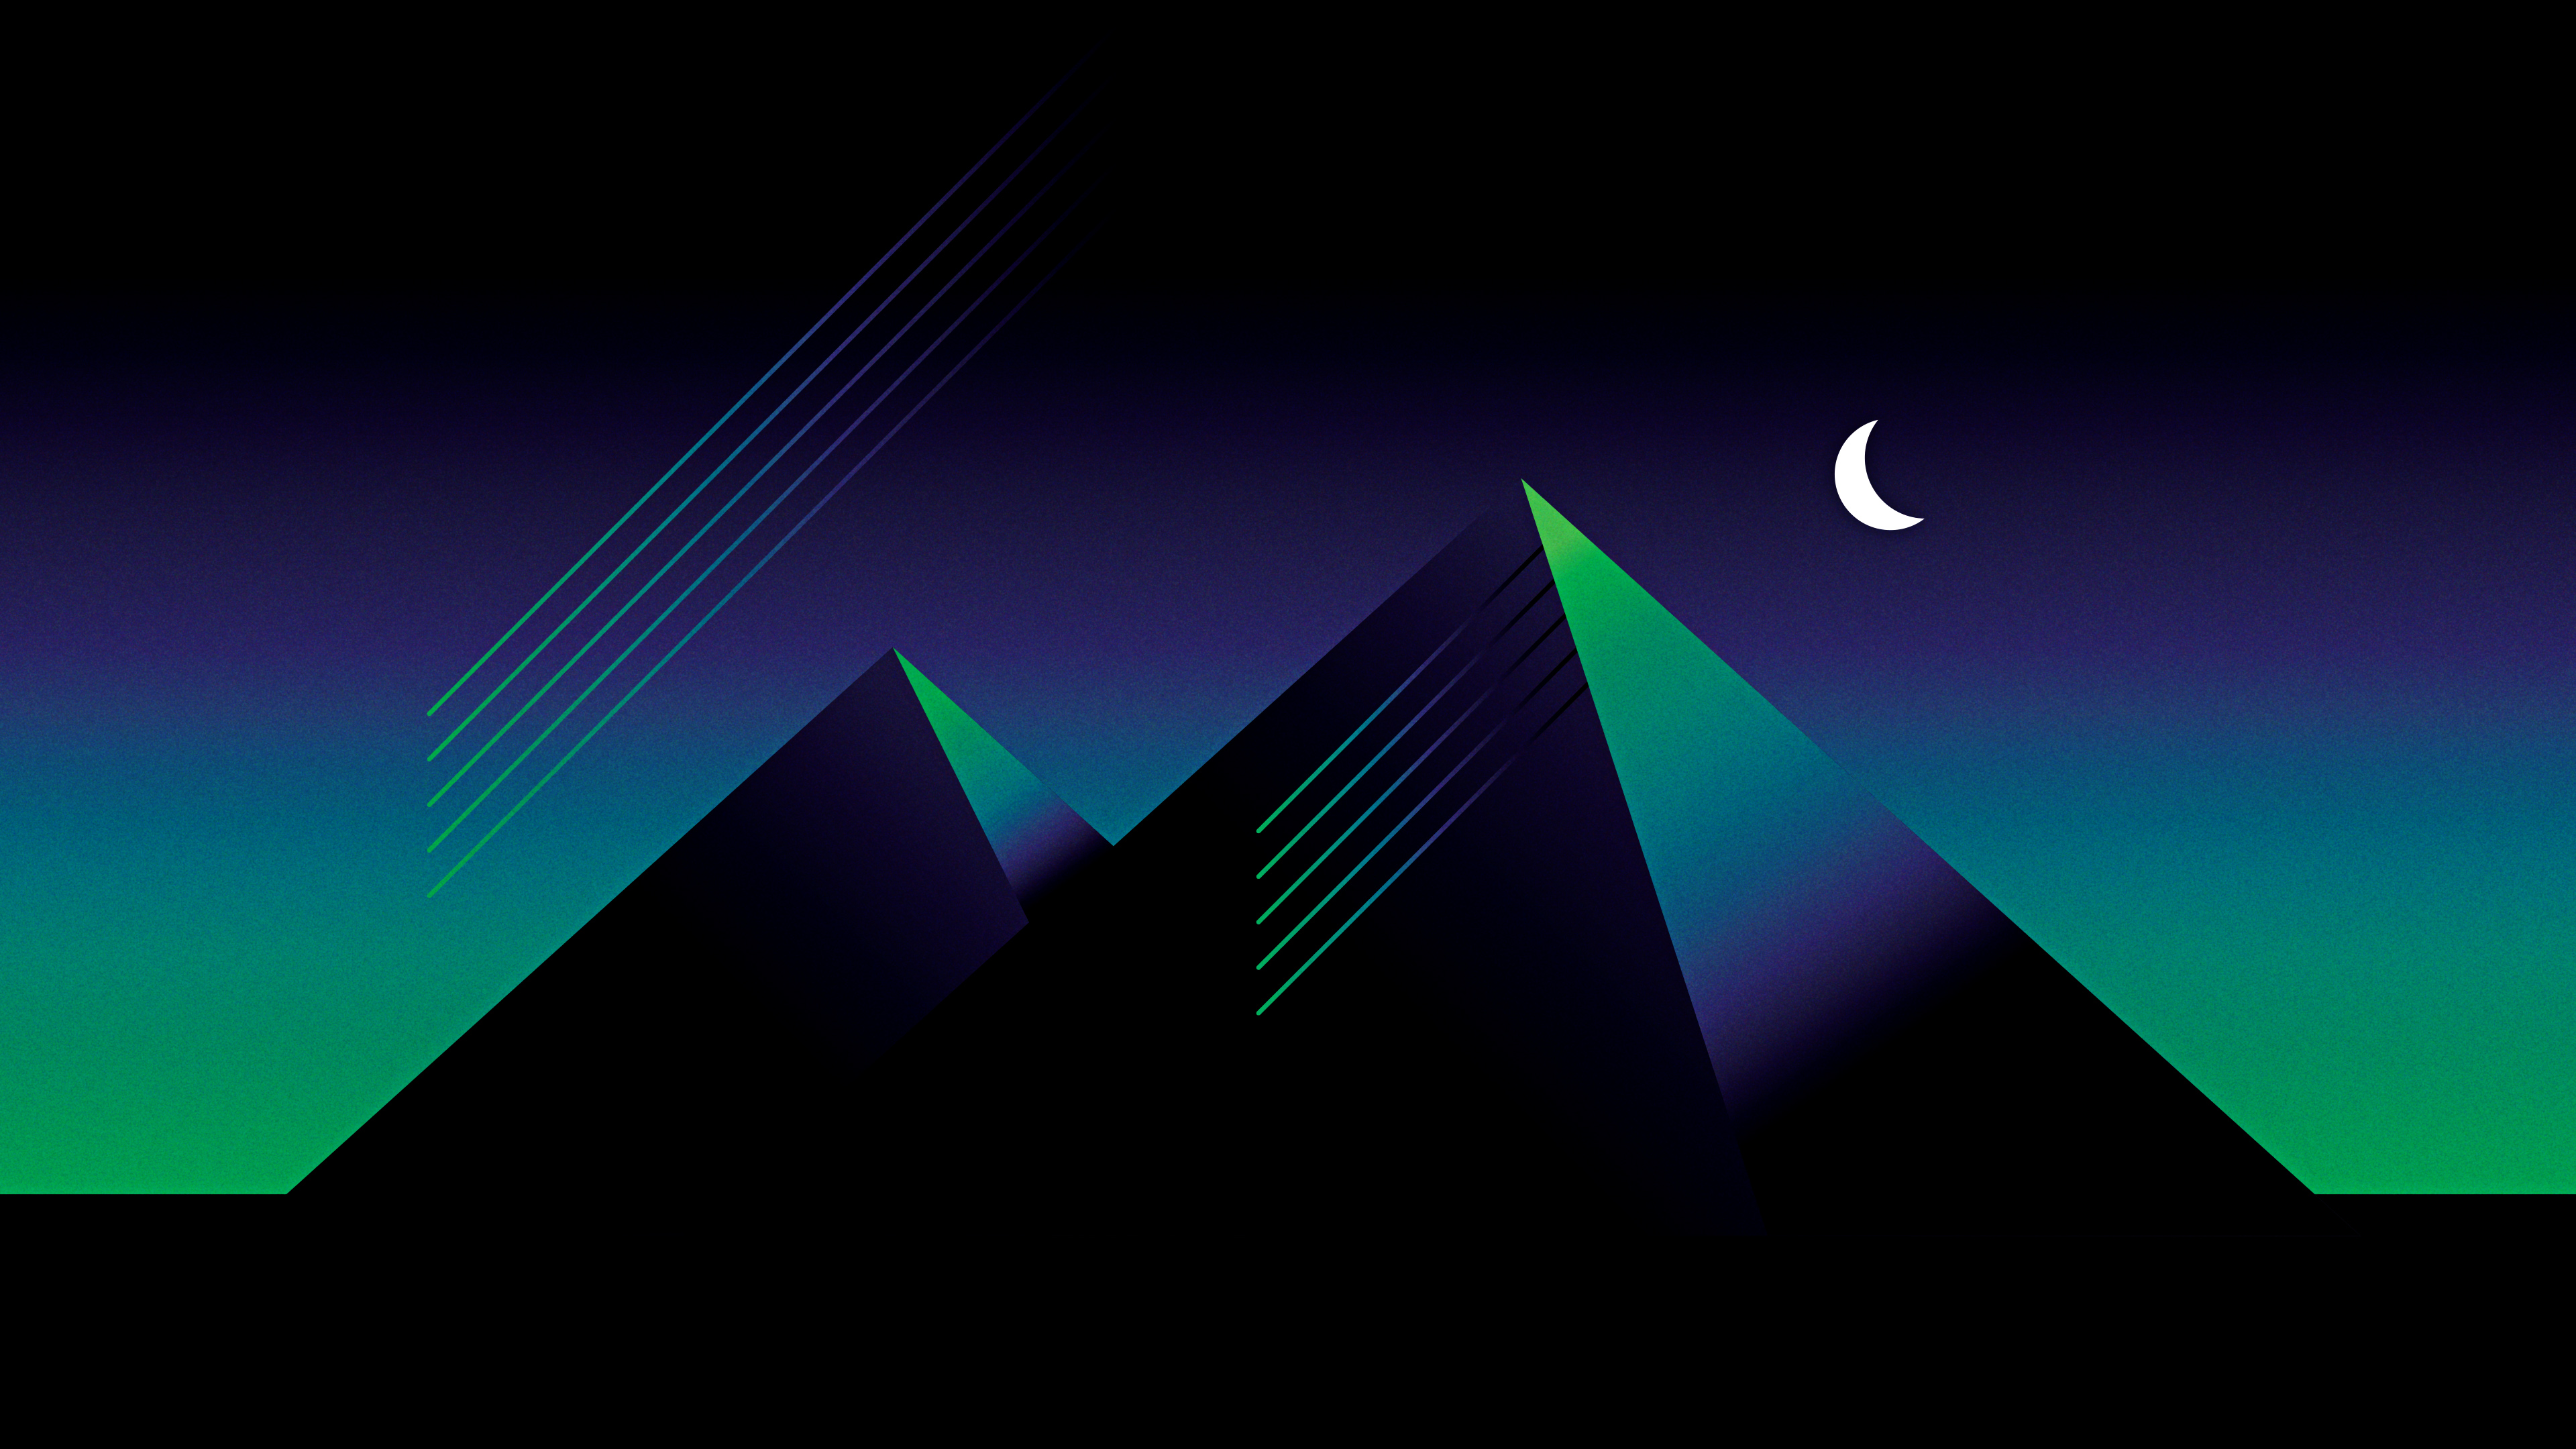 1366x768 retro pyramid 4k 1366x768 resolution hd 4k wallpapers images backgrounds photos and - Background images 4k hd ...